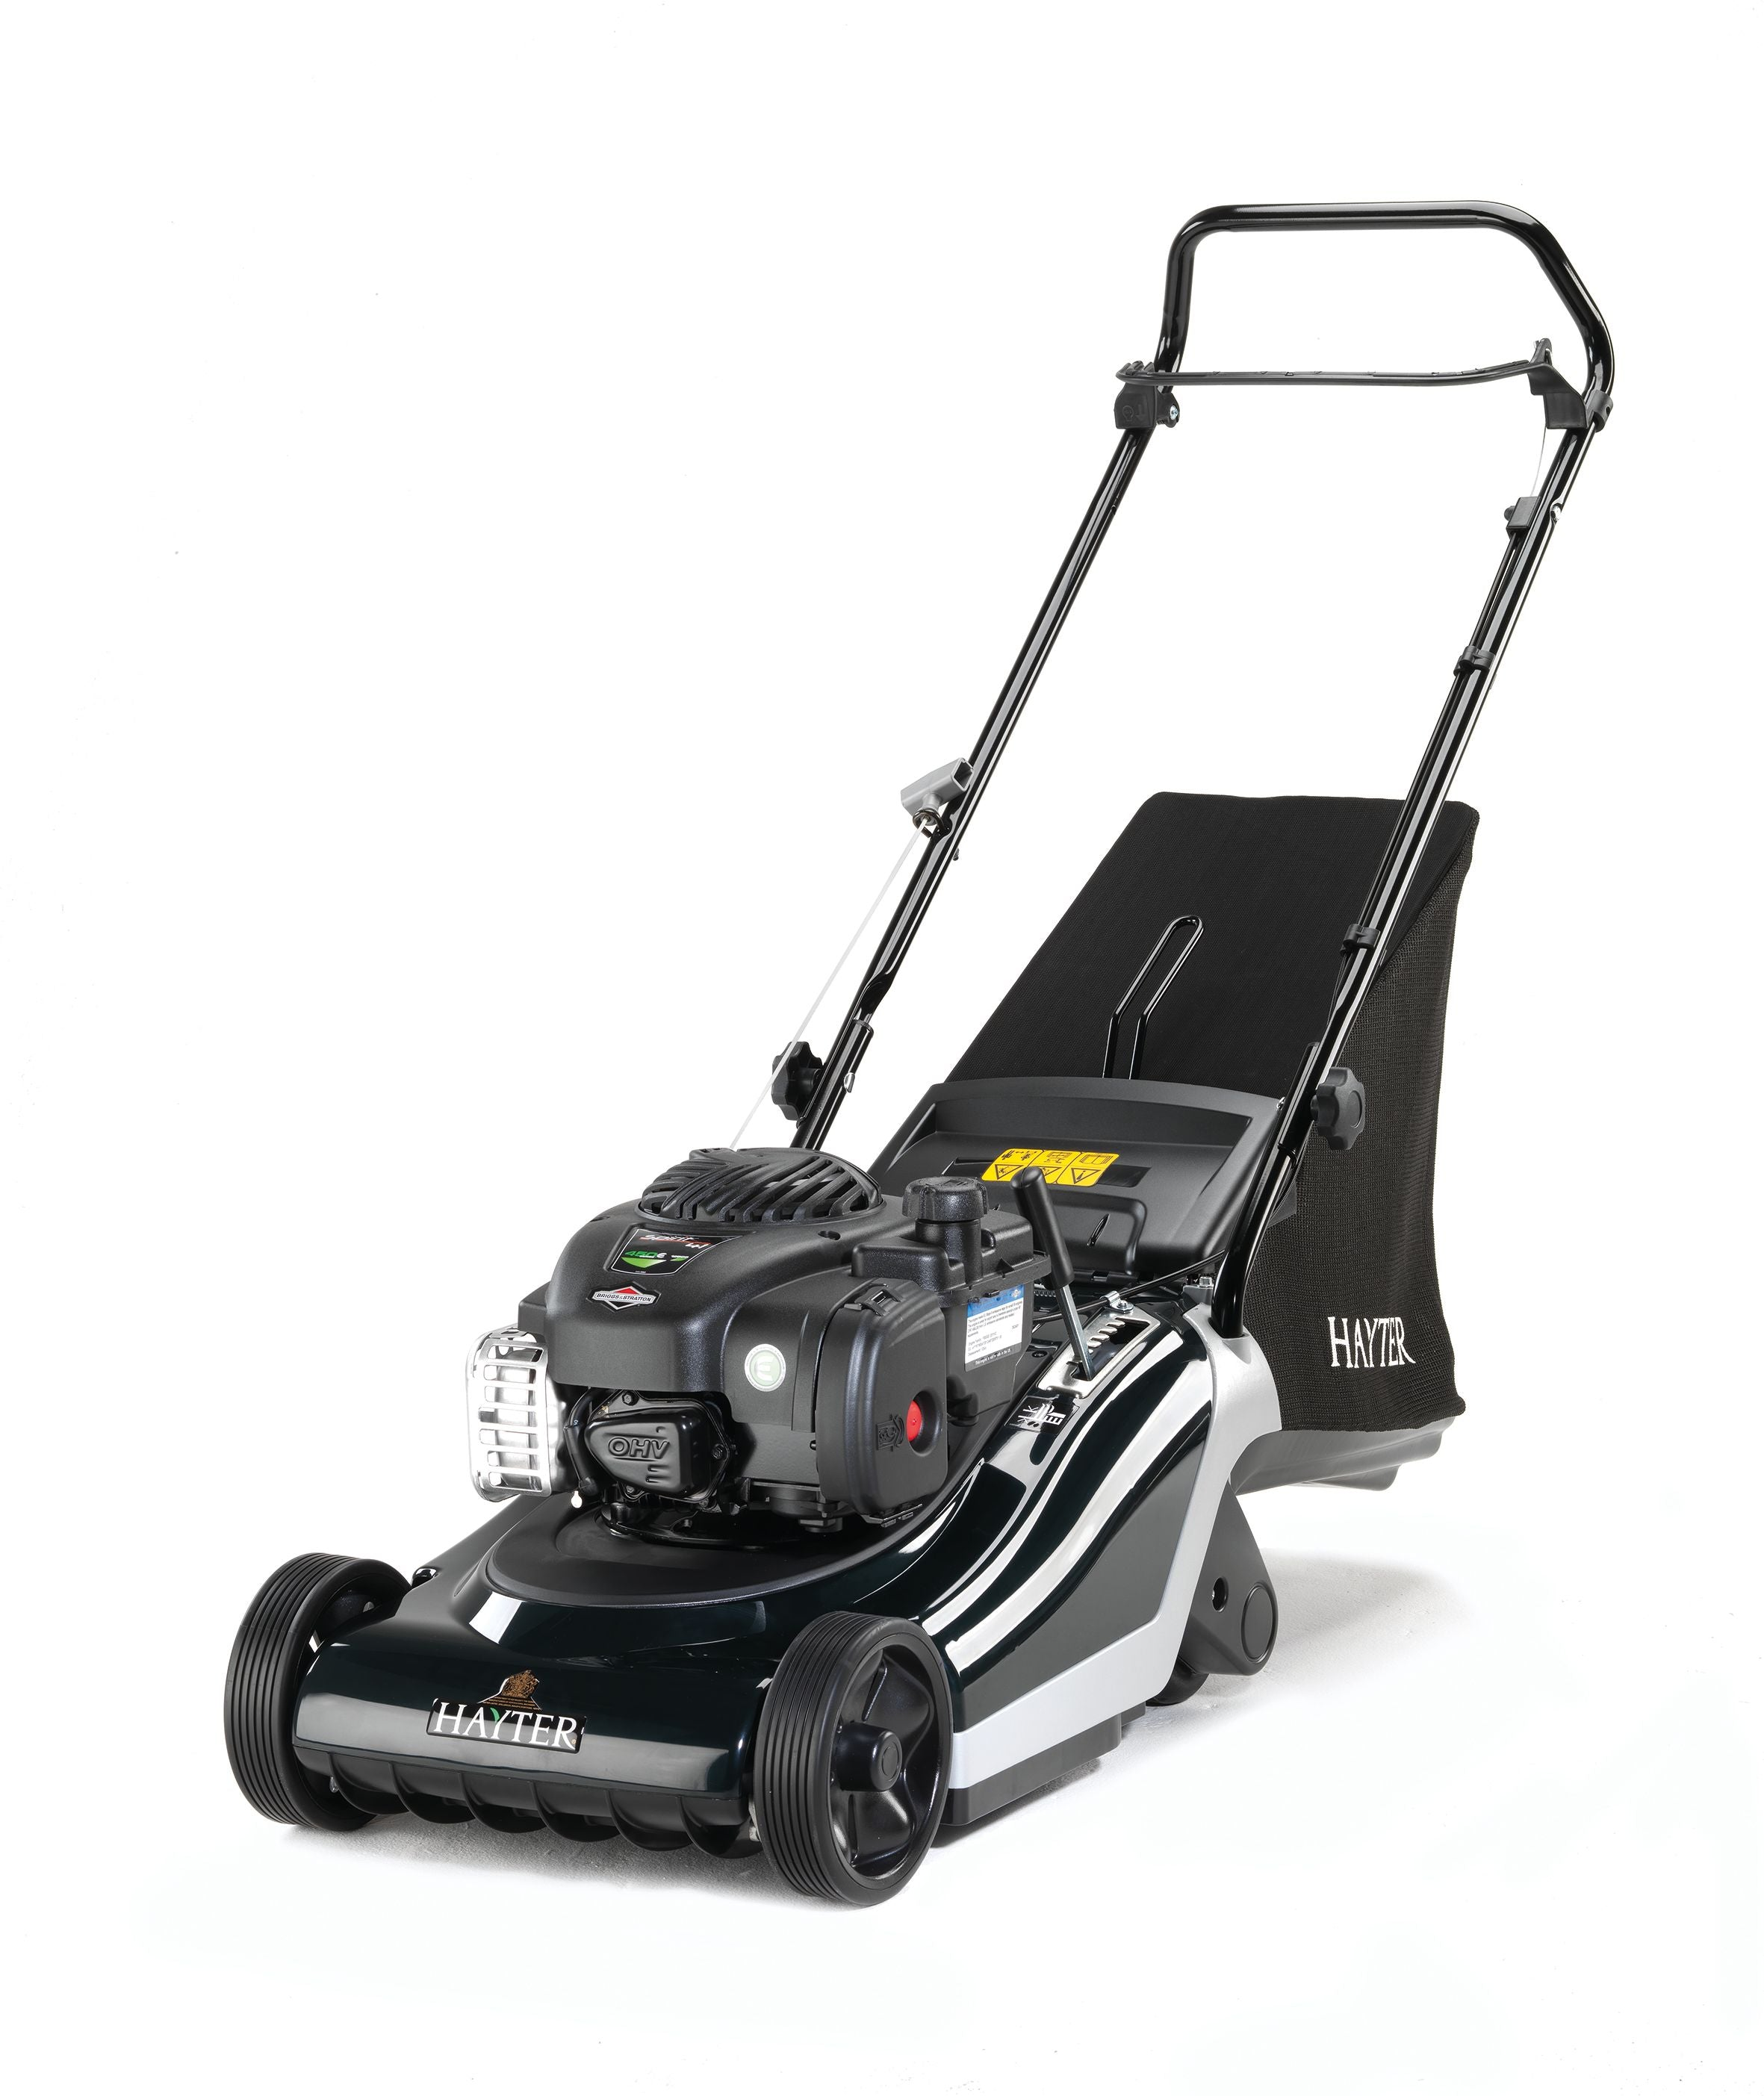 Hayter Spirit 41 cm - Petrol Powered Lawnmower